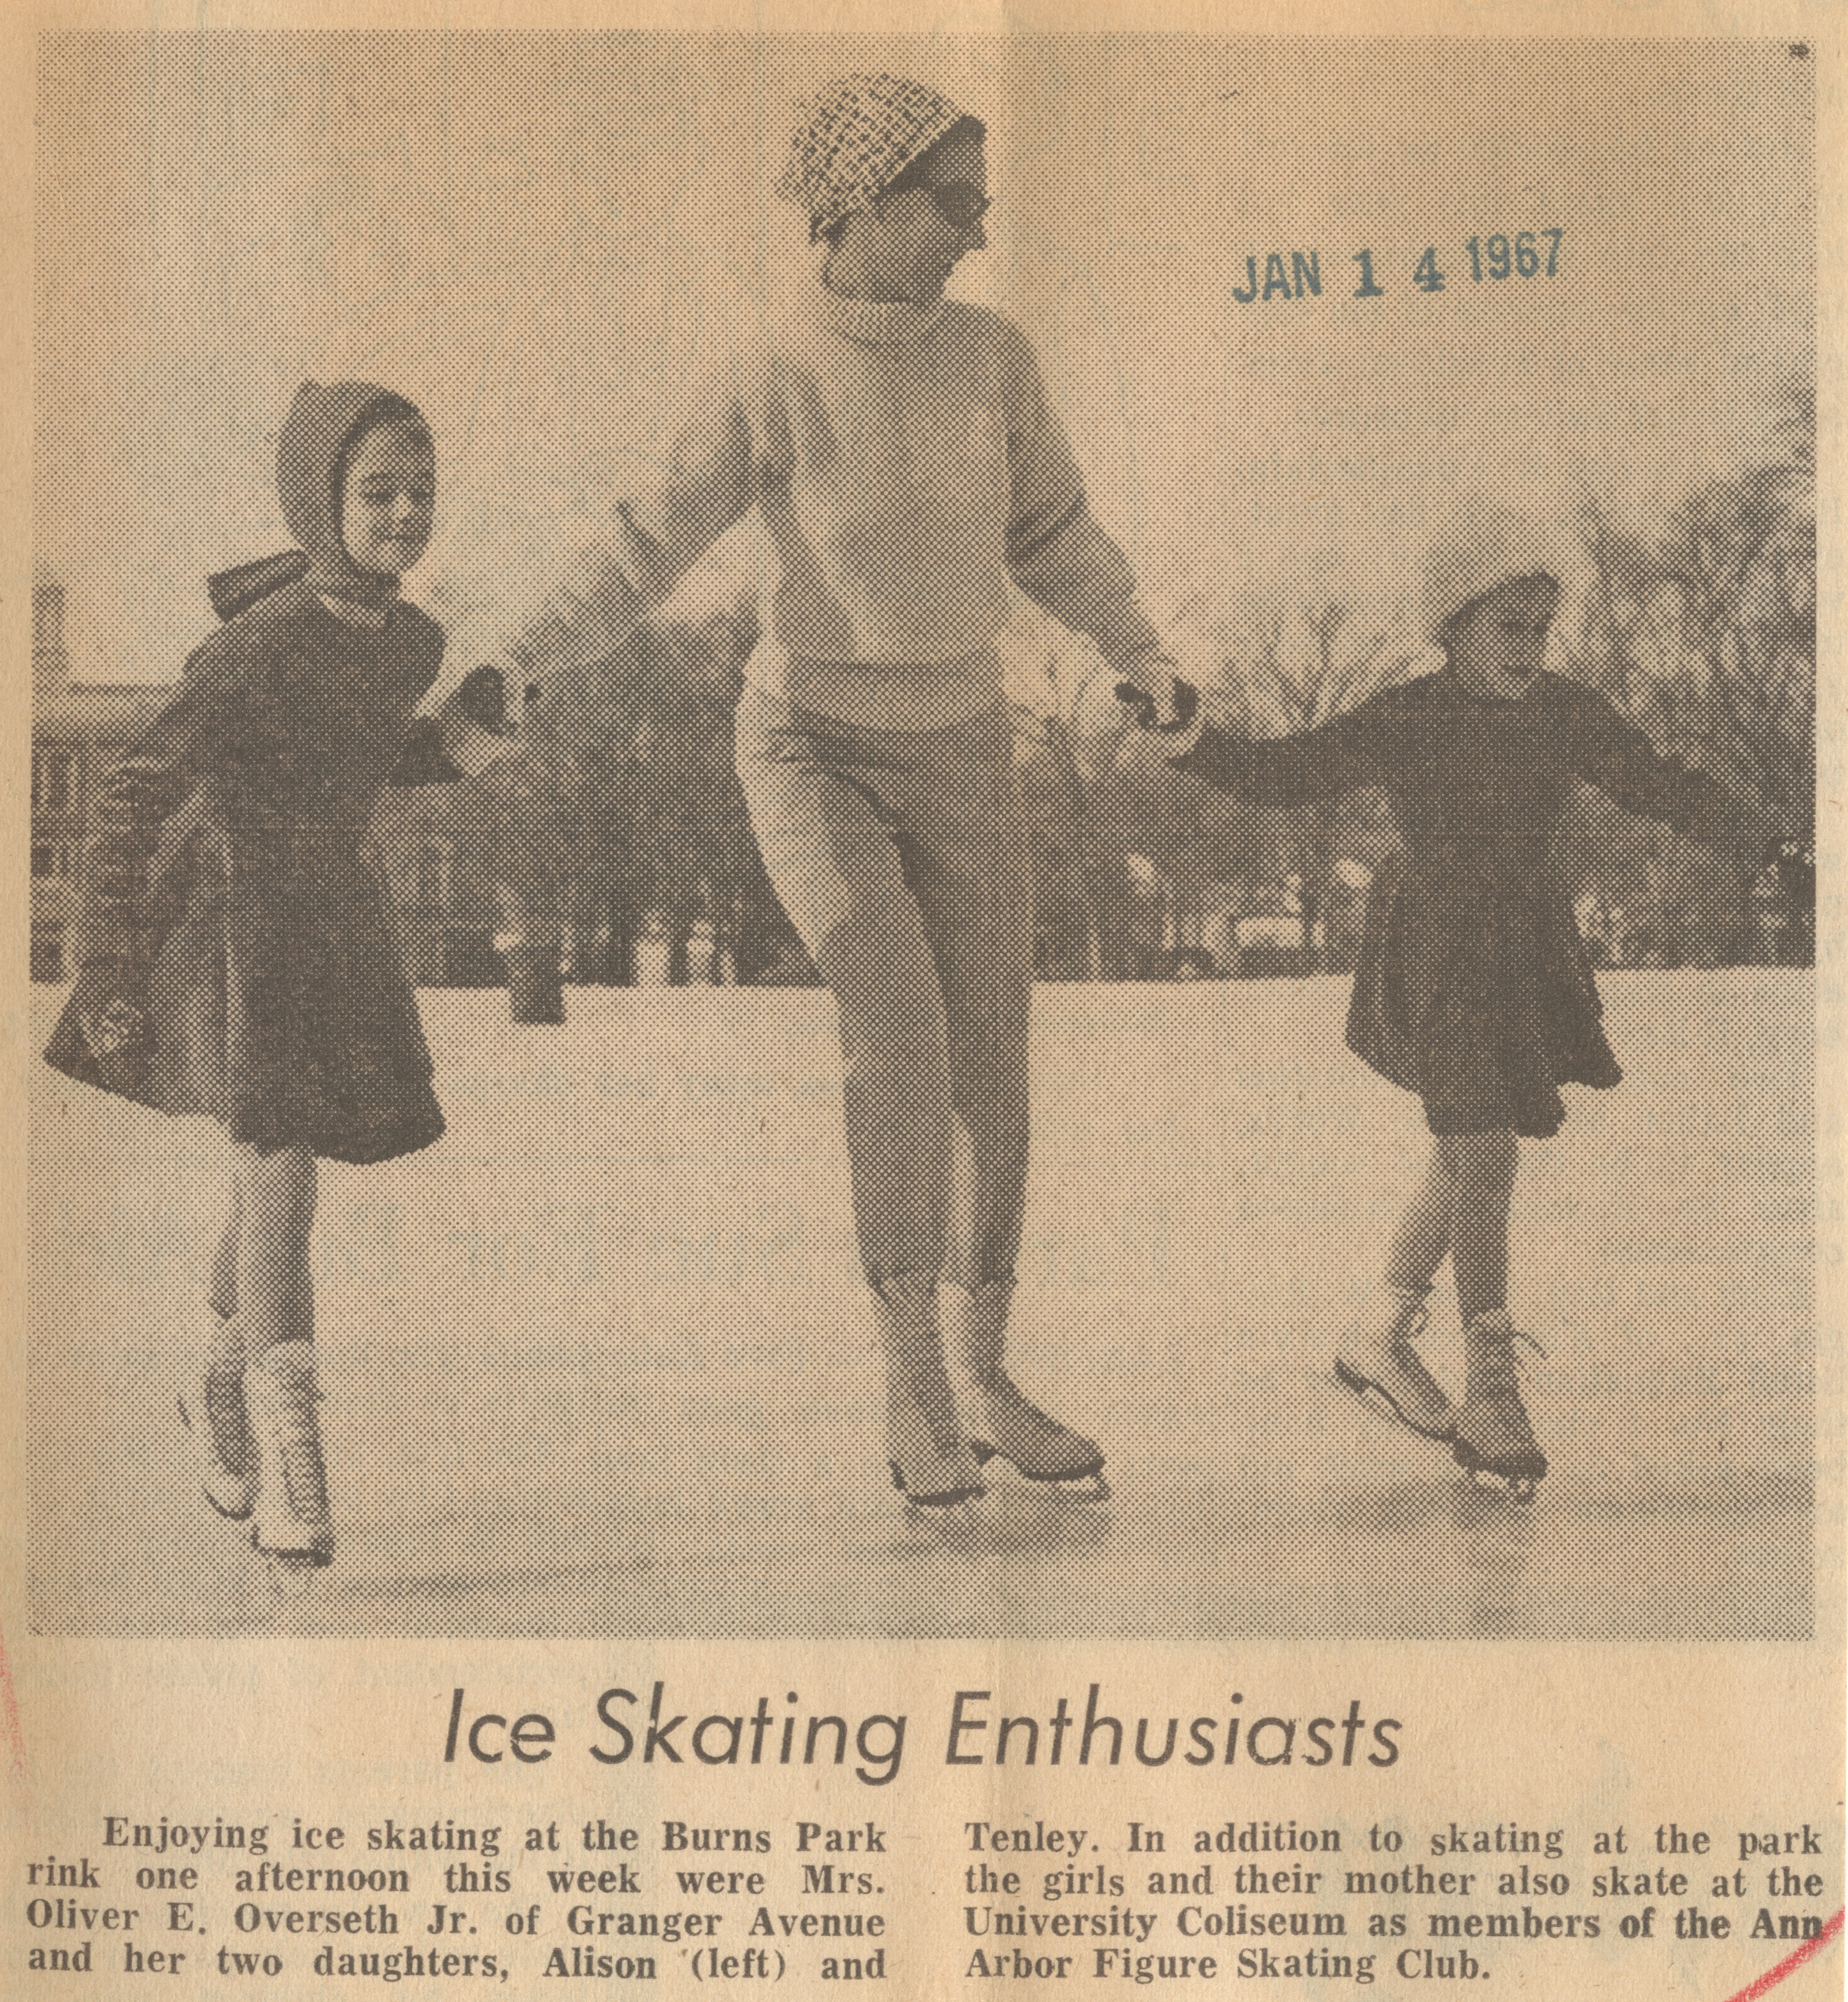 Ice Skating Enthusiasts image